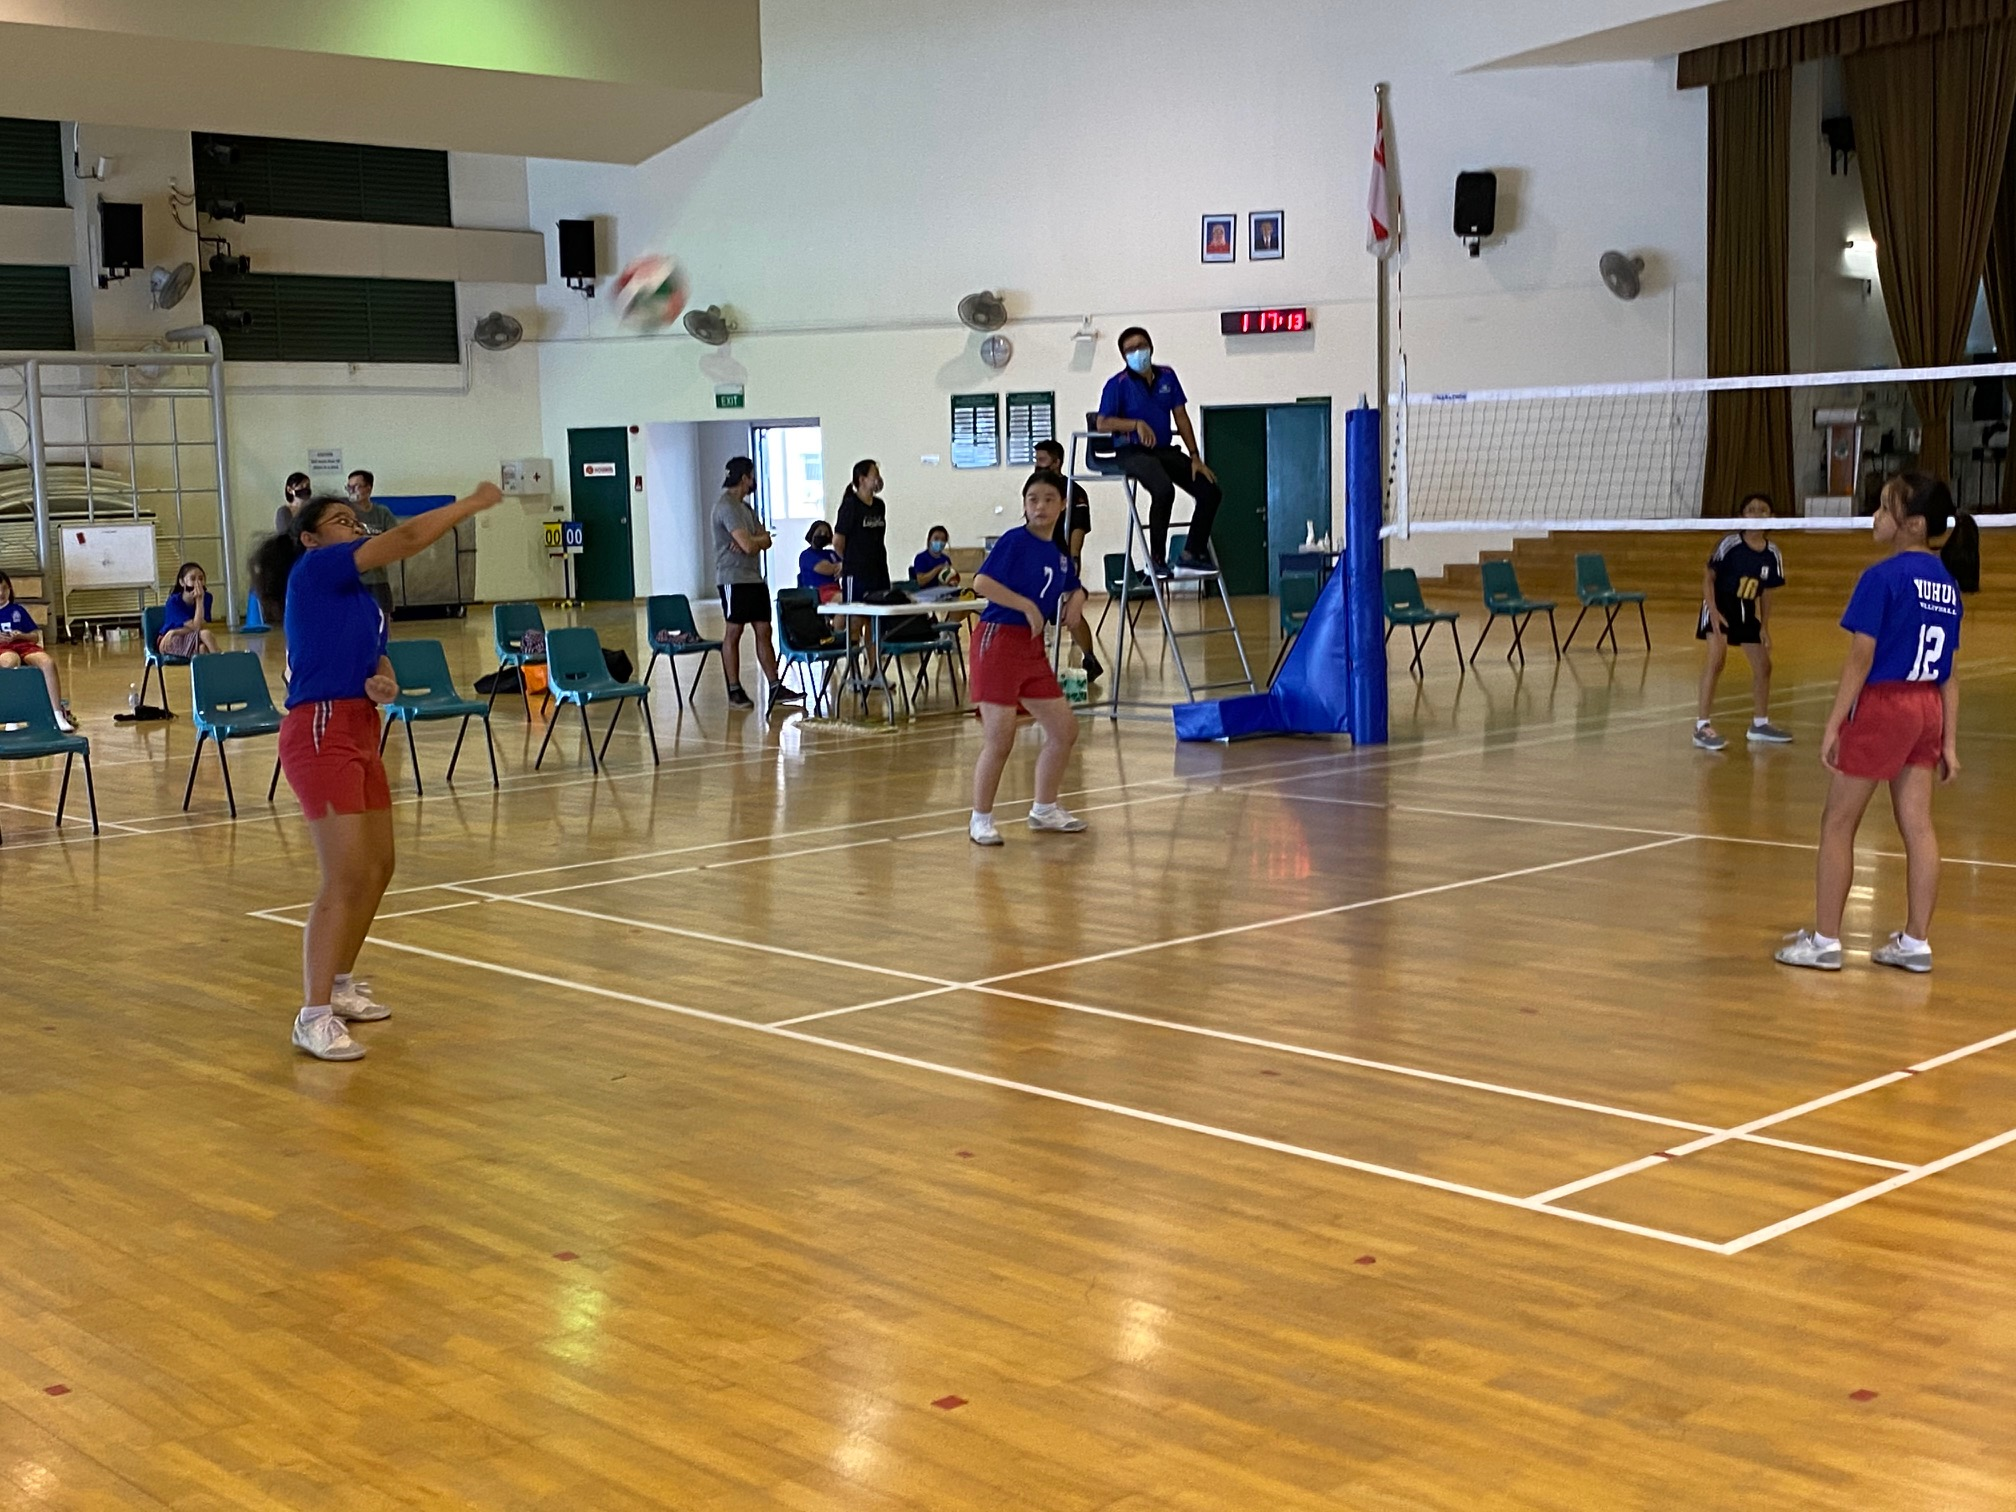 Yuhua Primary (blue) vs Xinmin Primary (black) at the National School Games Senior Division girls volleyball preliminary stage (3)